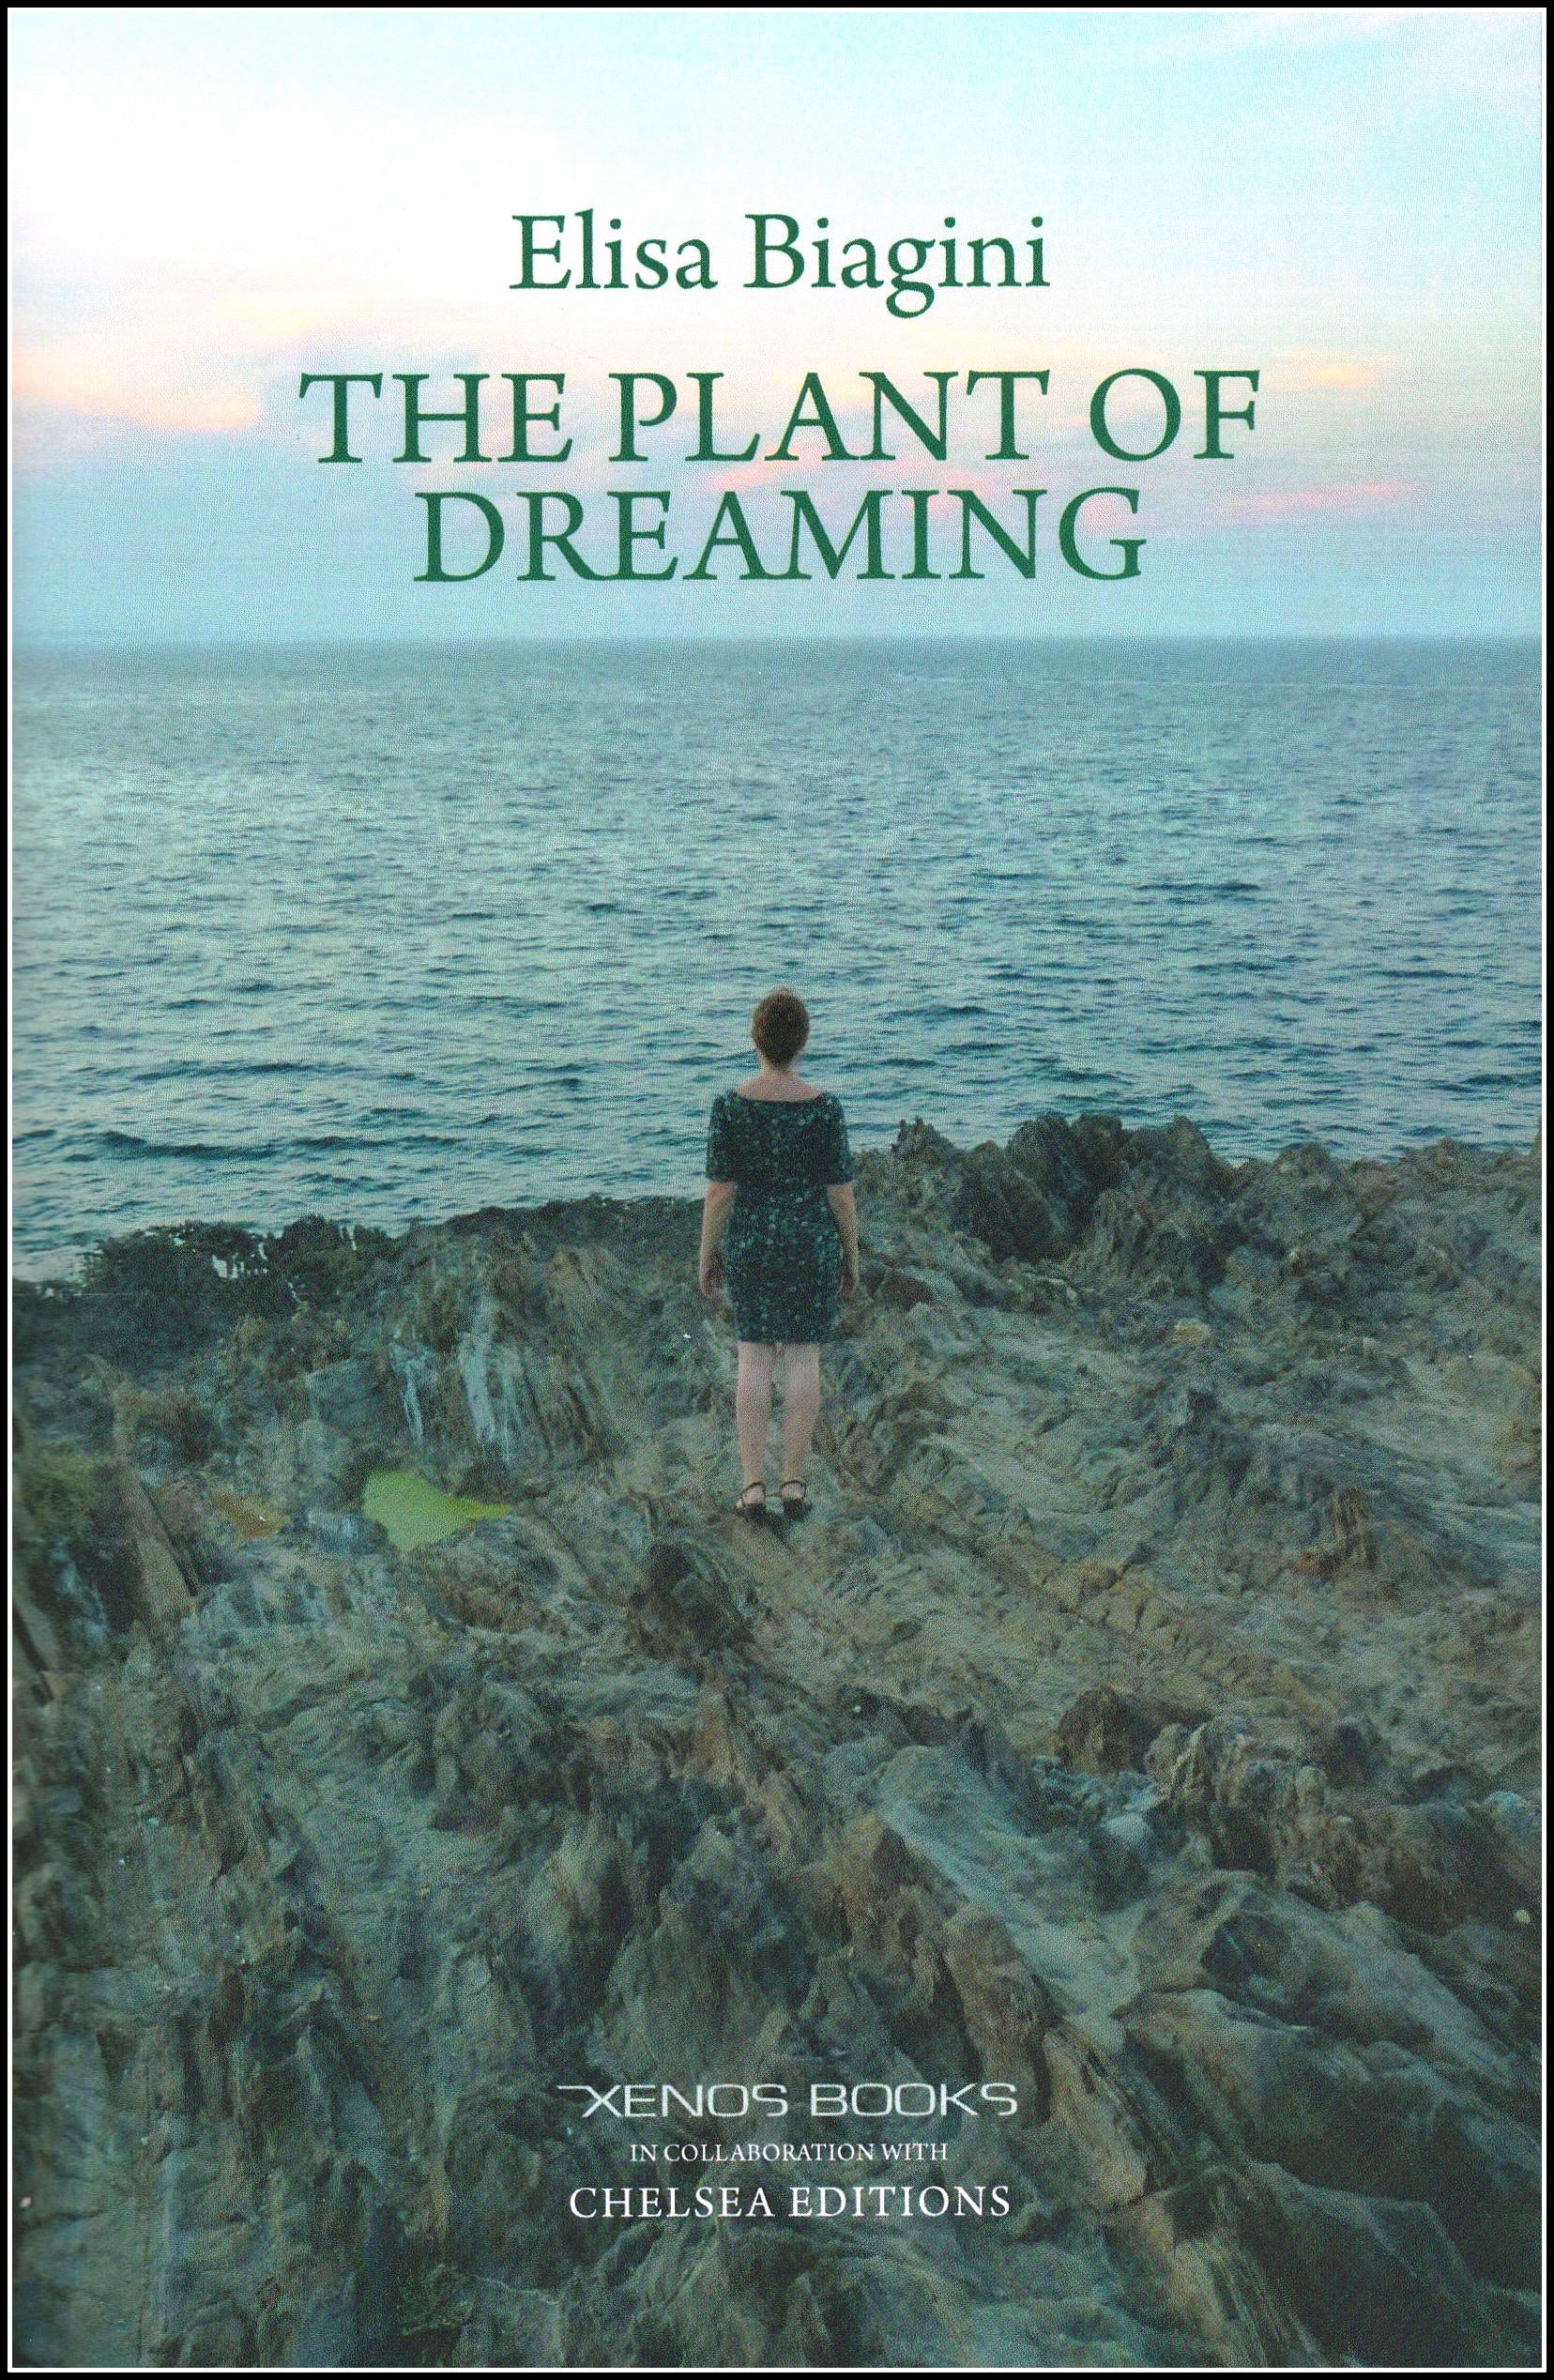 The Plant of Dreaming: Poems